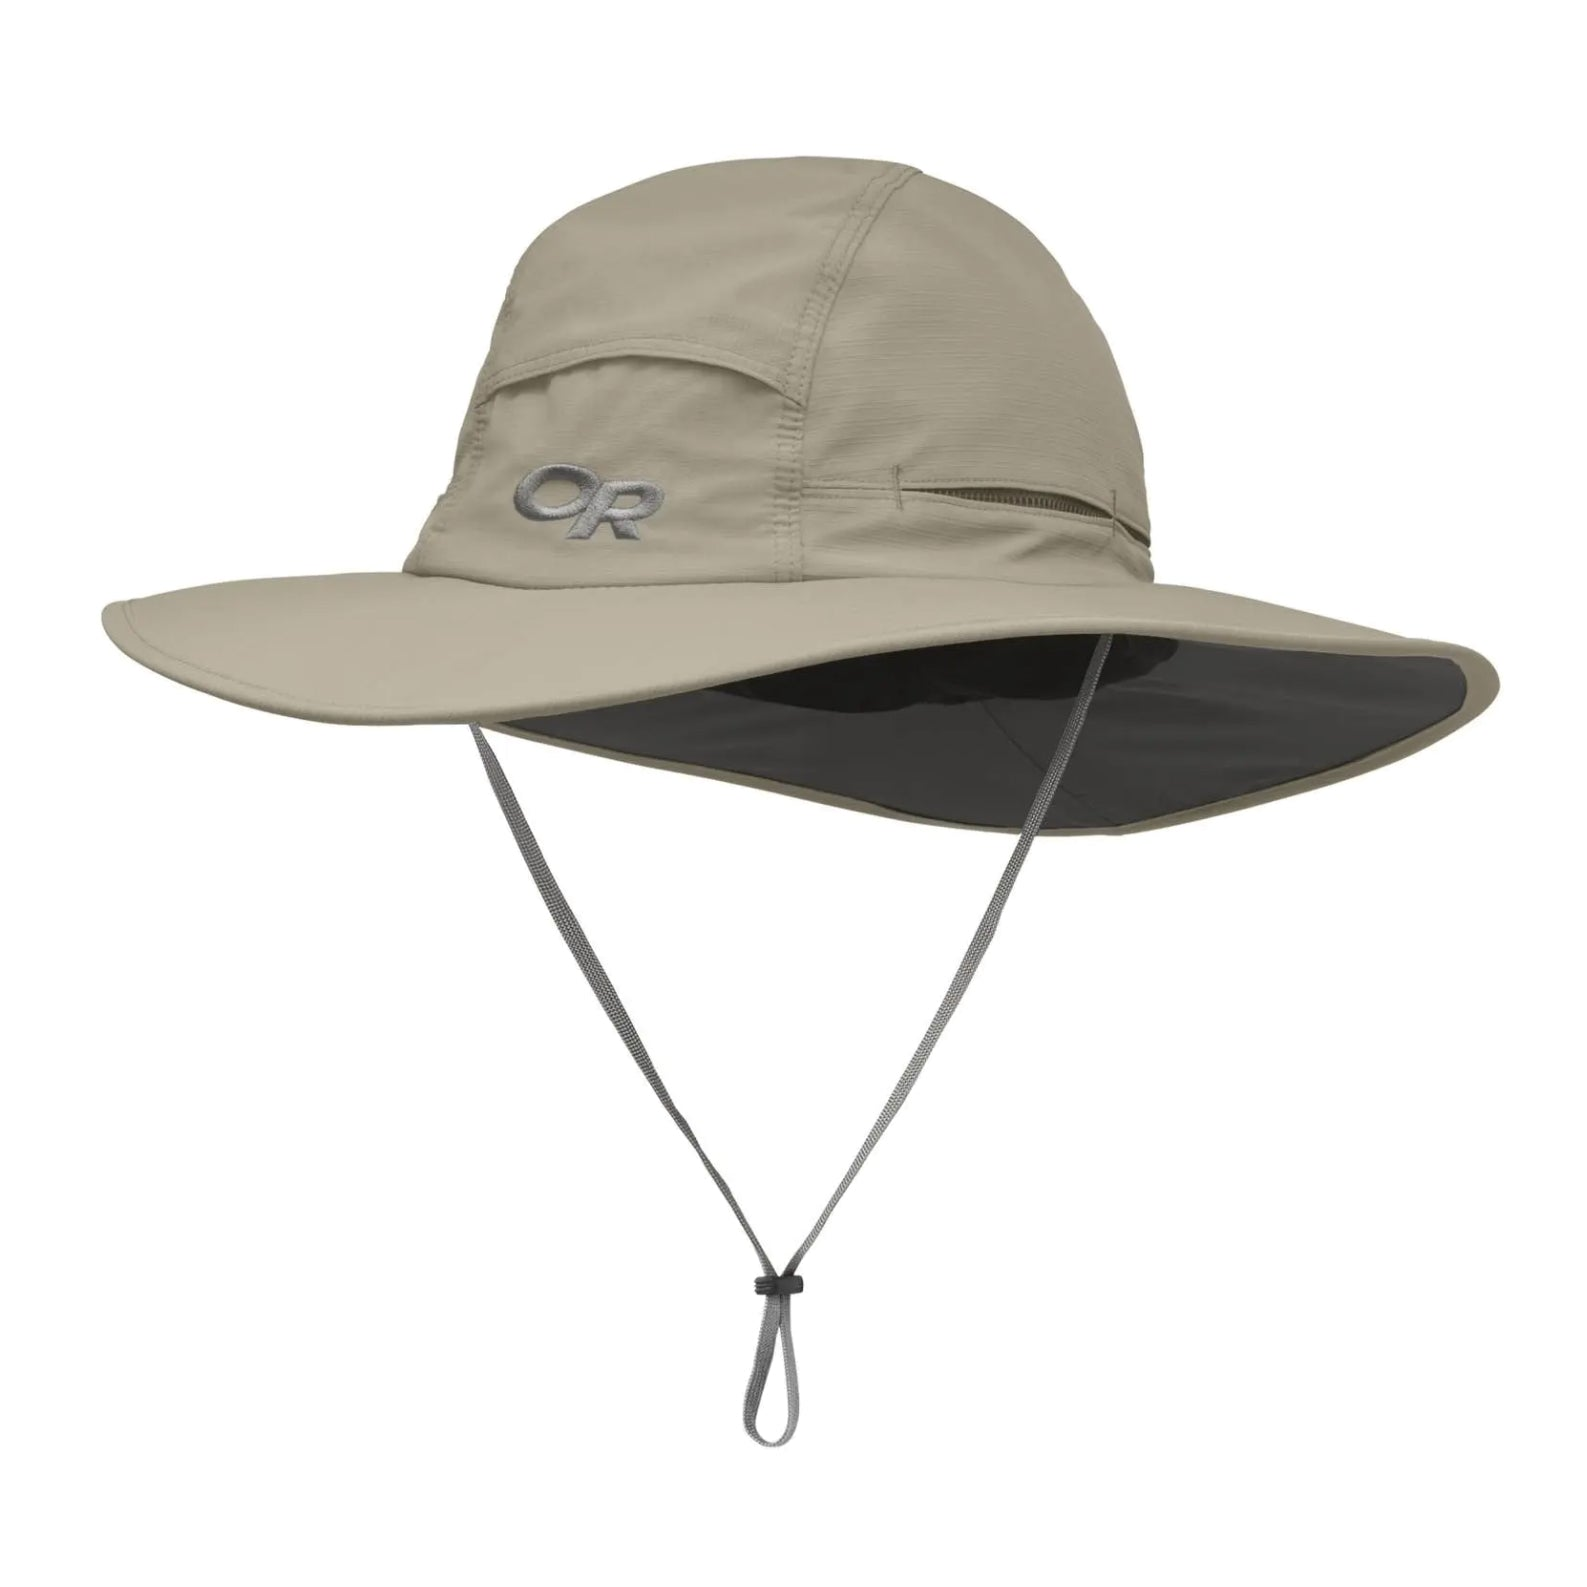 outdoor research sombriolet sun hat in khaki